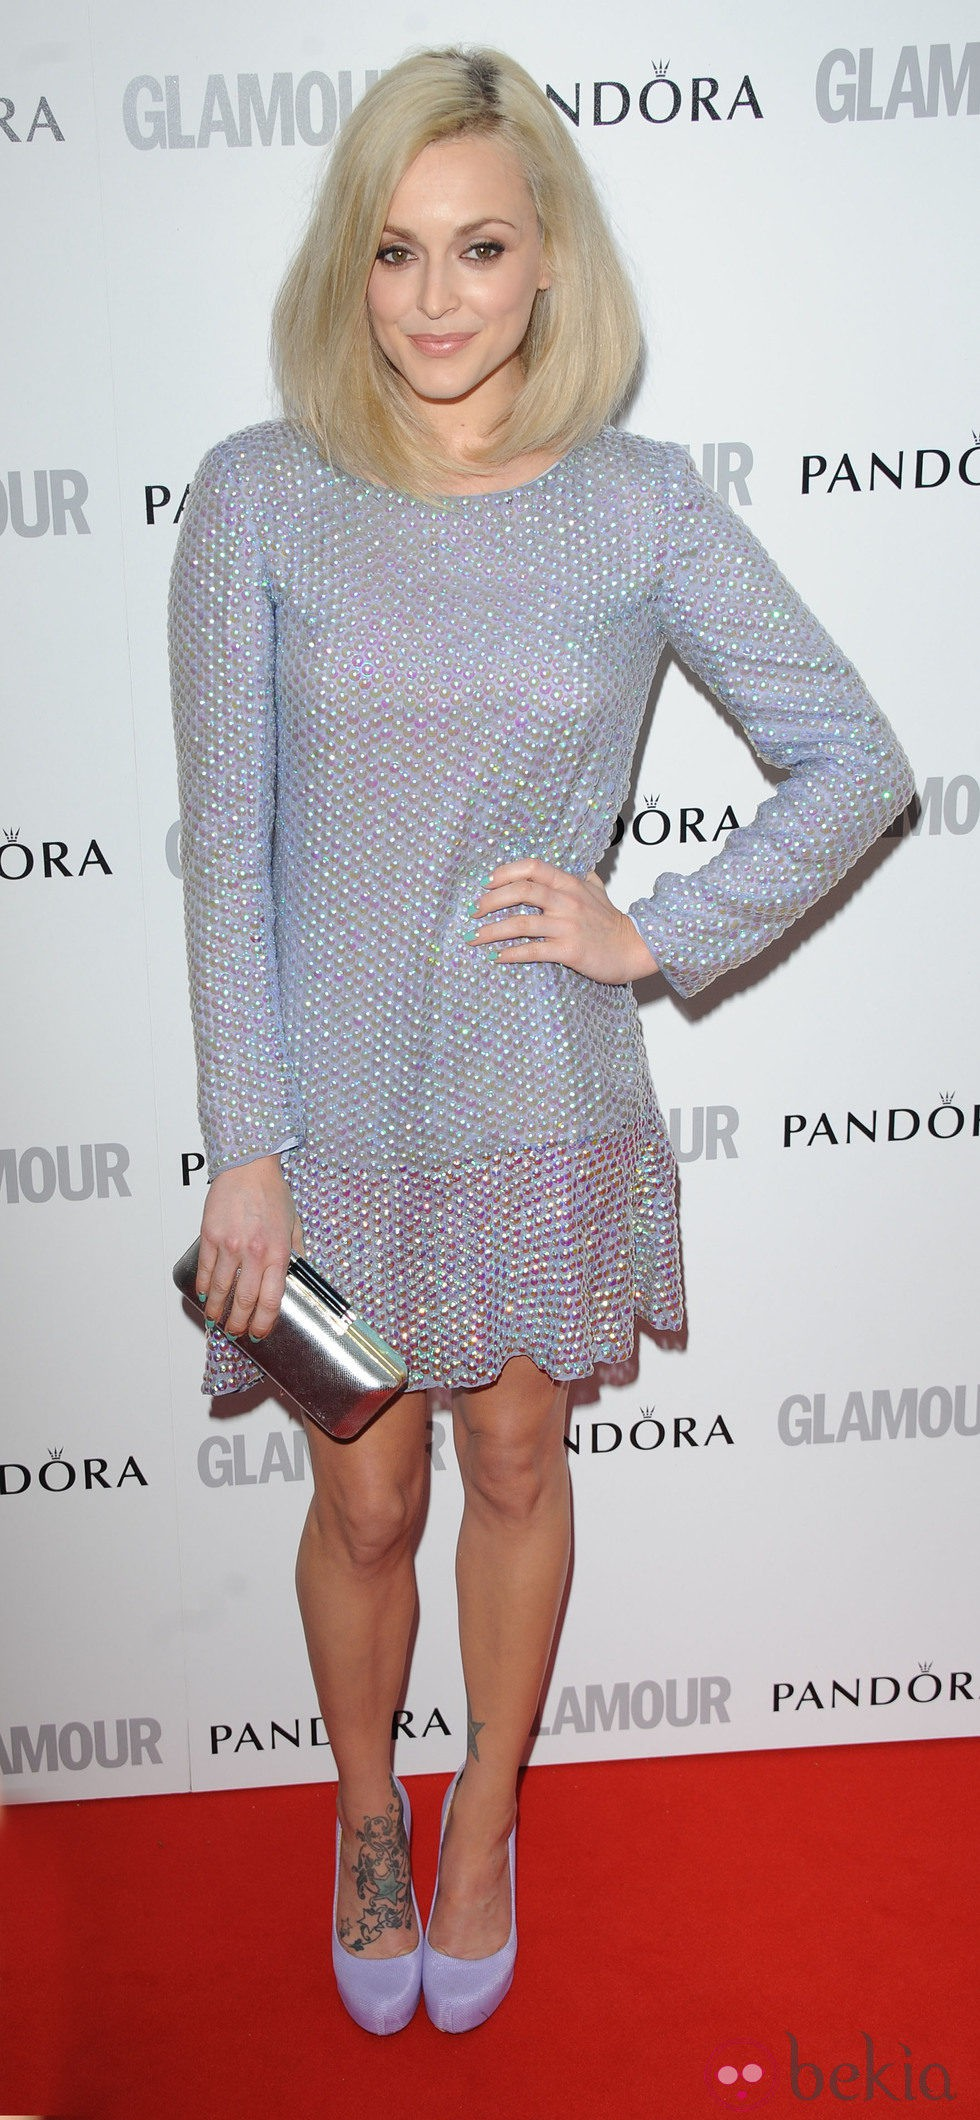 Fearne Cotton en los Glamour Women of the Year Awards 2012 de Londres